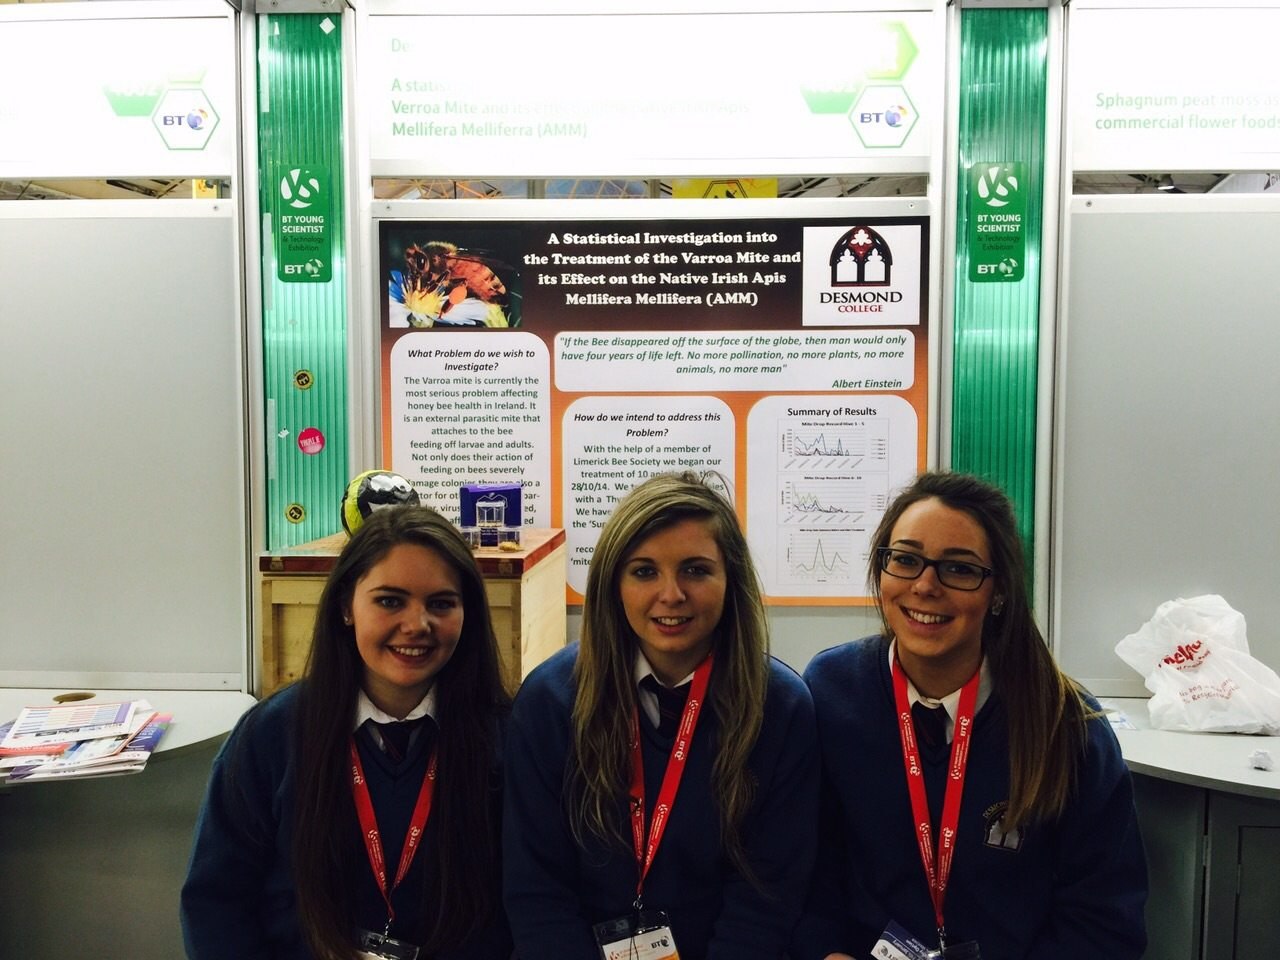 Desmond College Students Enjoying the BT Young Scientist : A statistical investigation into the treatment of the varroa mite and its effects on the native irish apis mellifera mellifera (AMM)